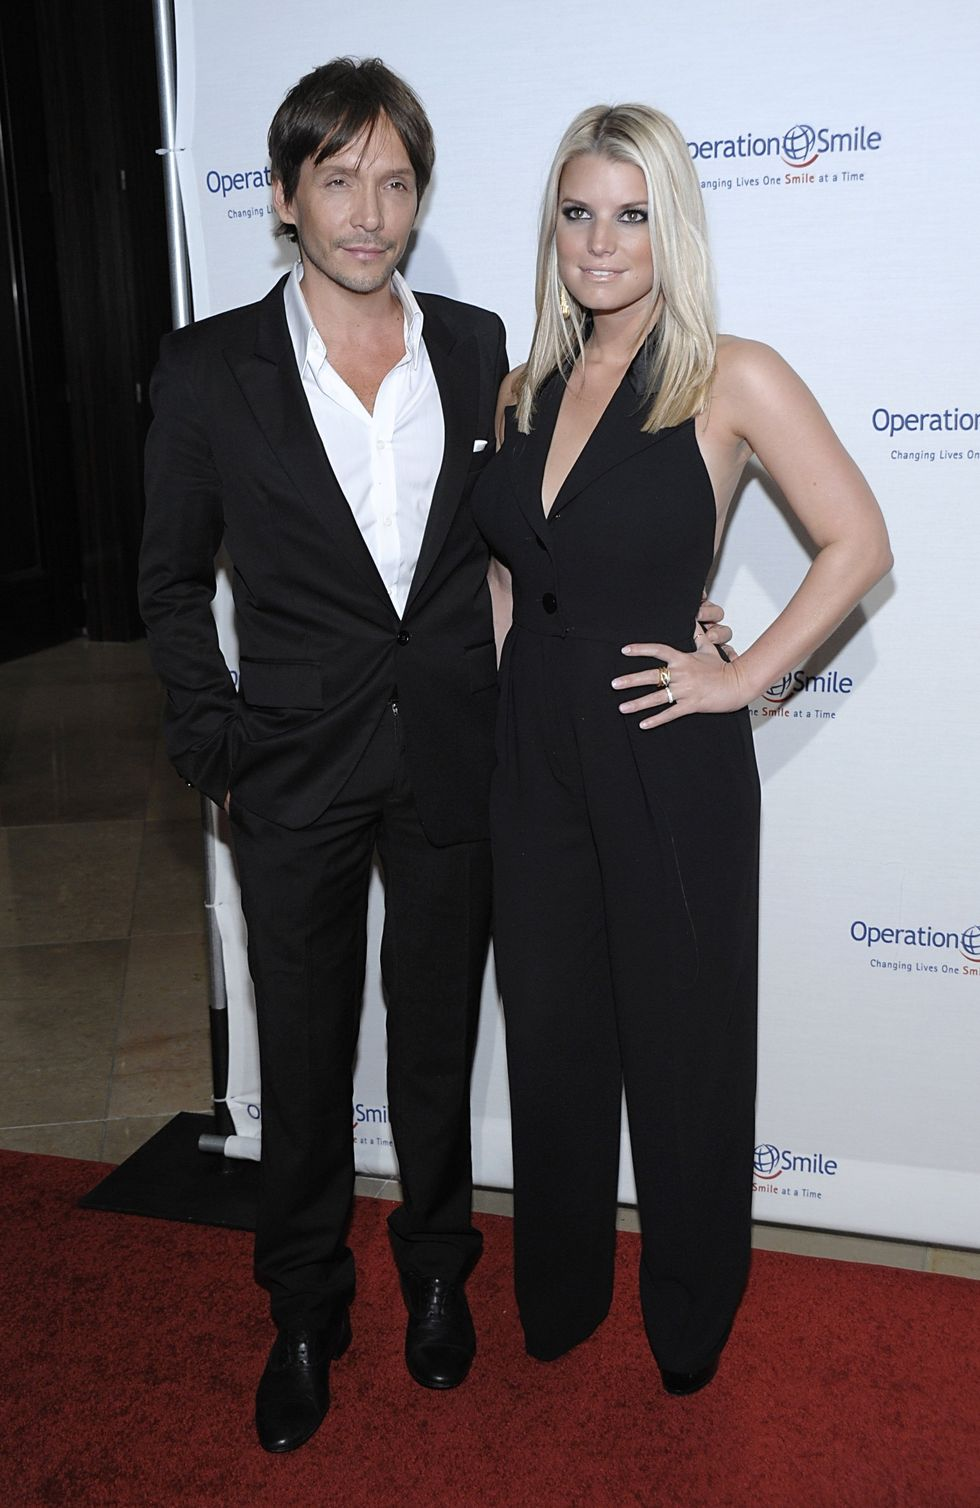 jessica-simpson-operation-smiles-8th-annual-smile-gala-01